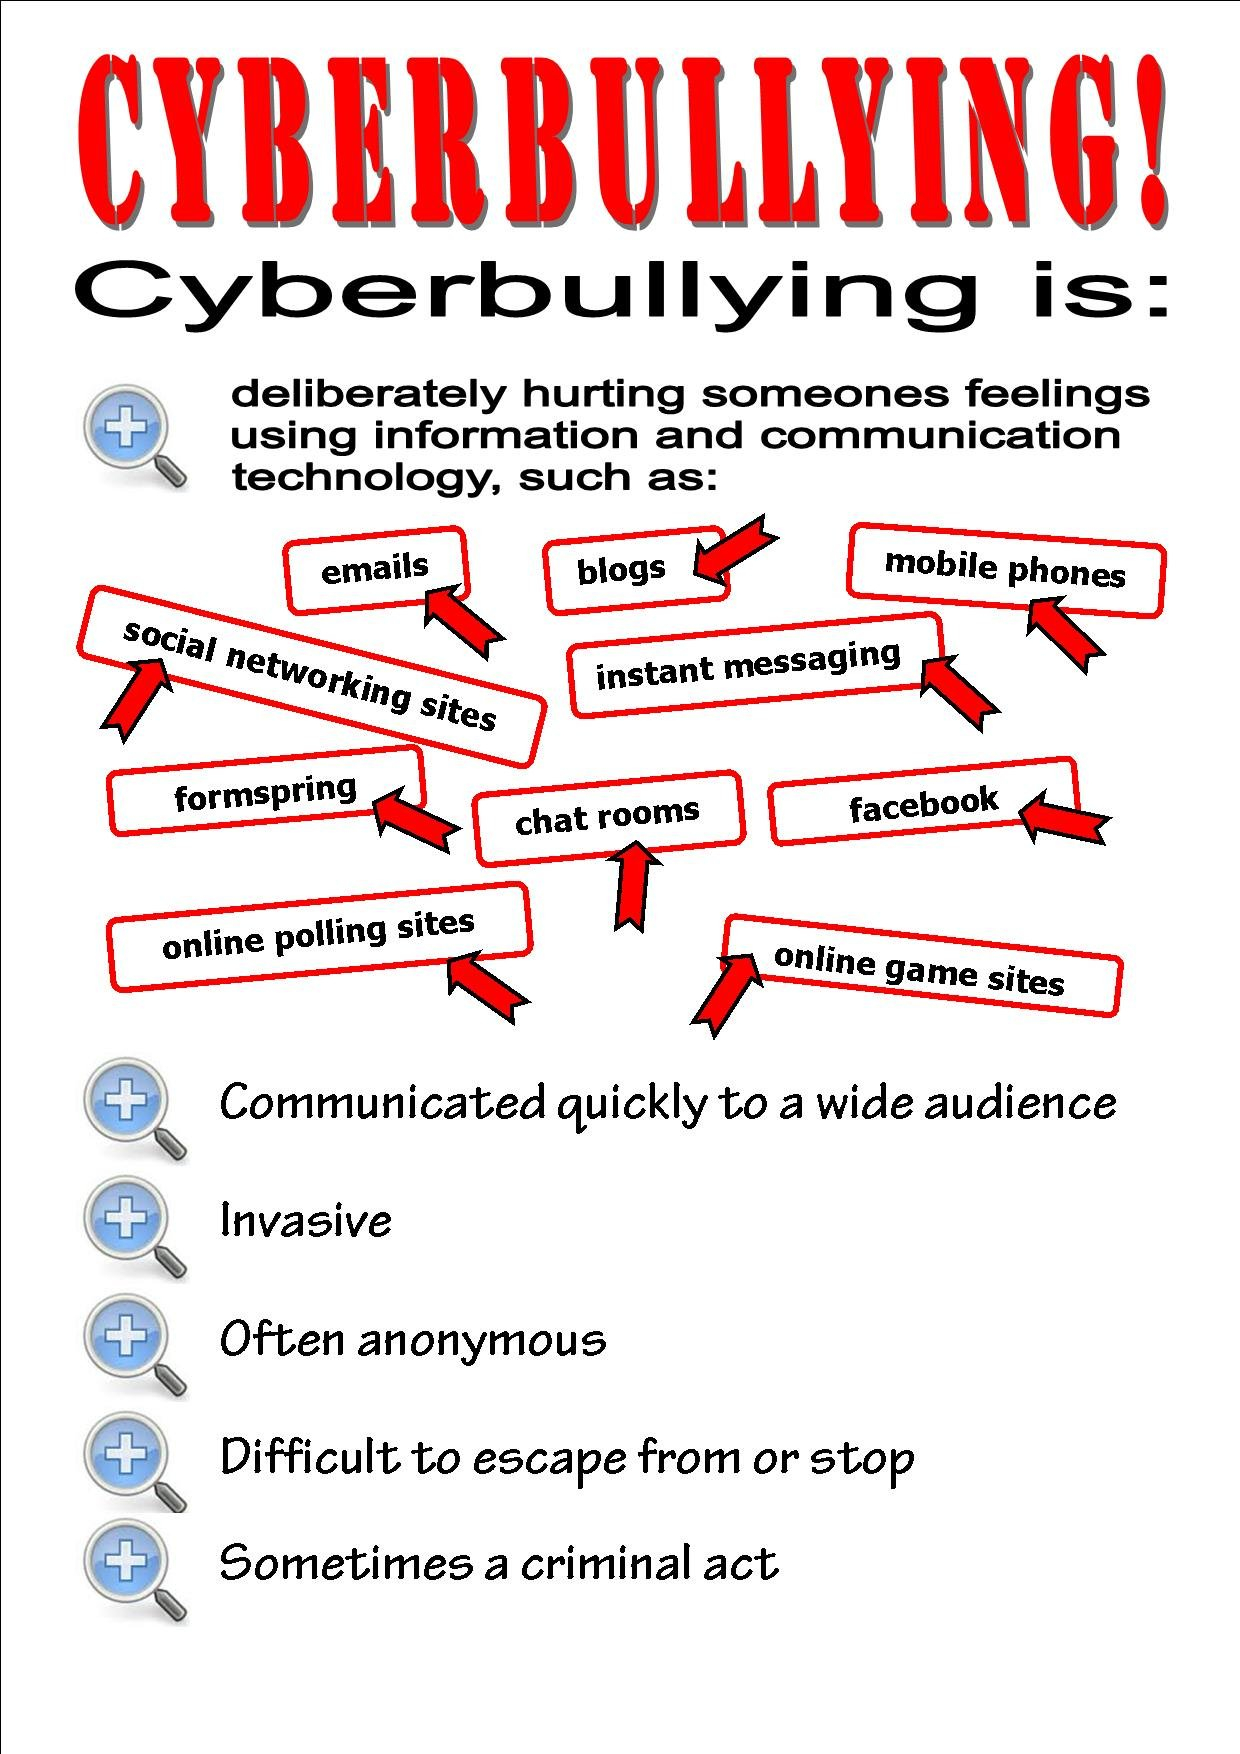 Printables Cyber Bullying Worksheets Lemonlilyfestival Worksheets As Well As Cyber Bullying Worksheets Activities